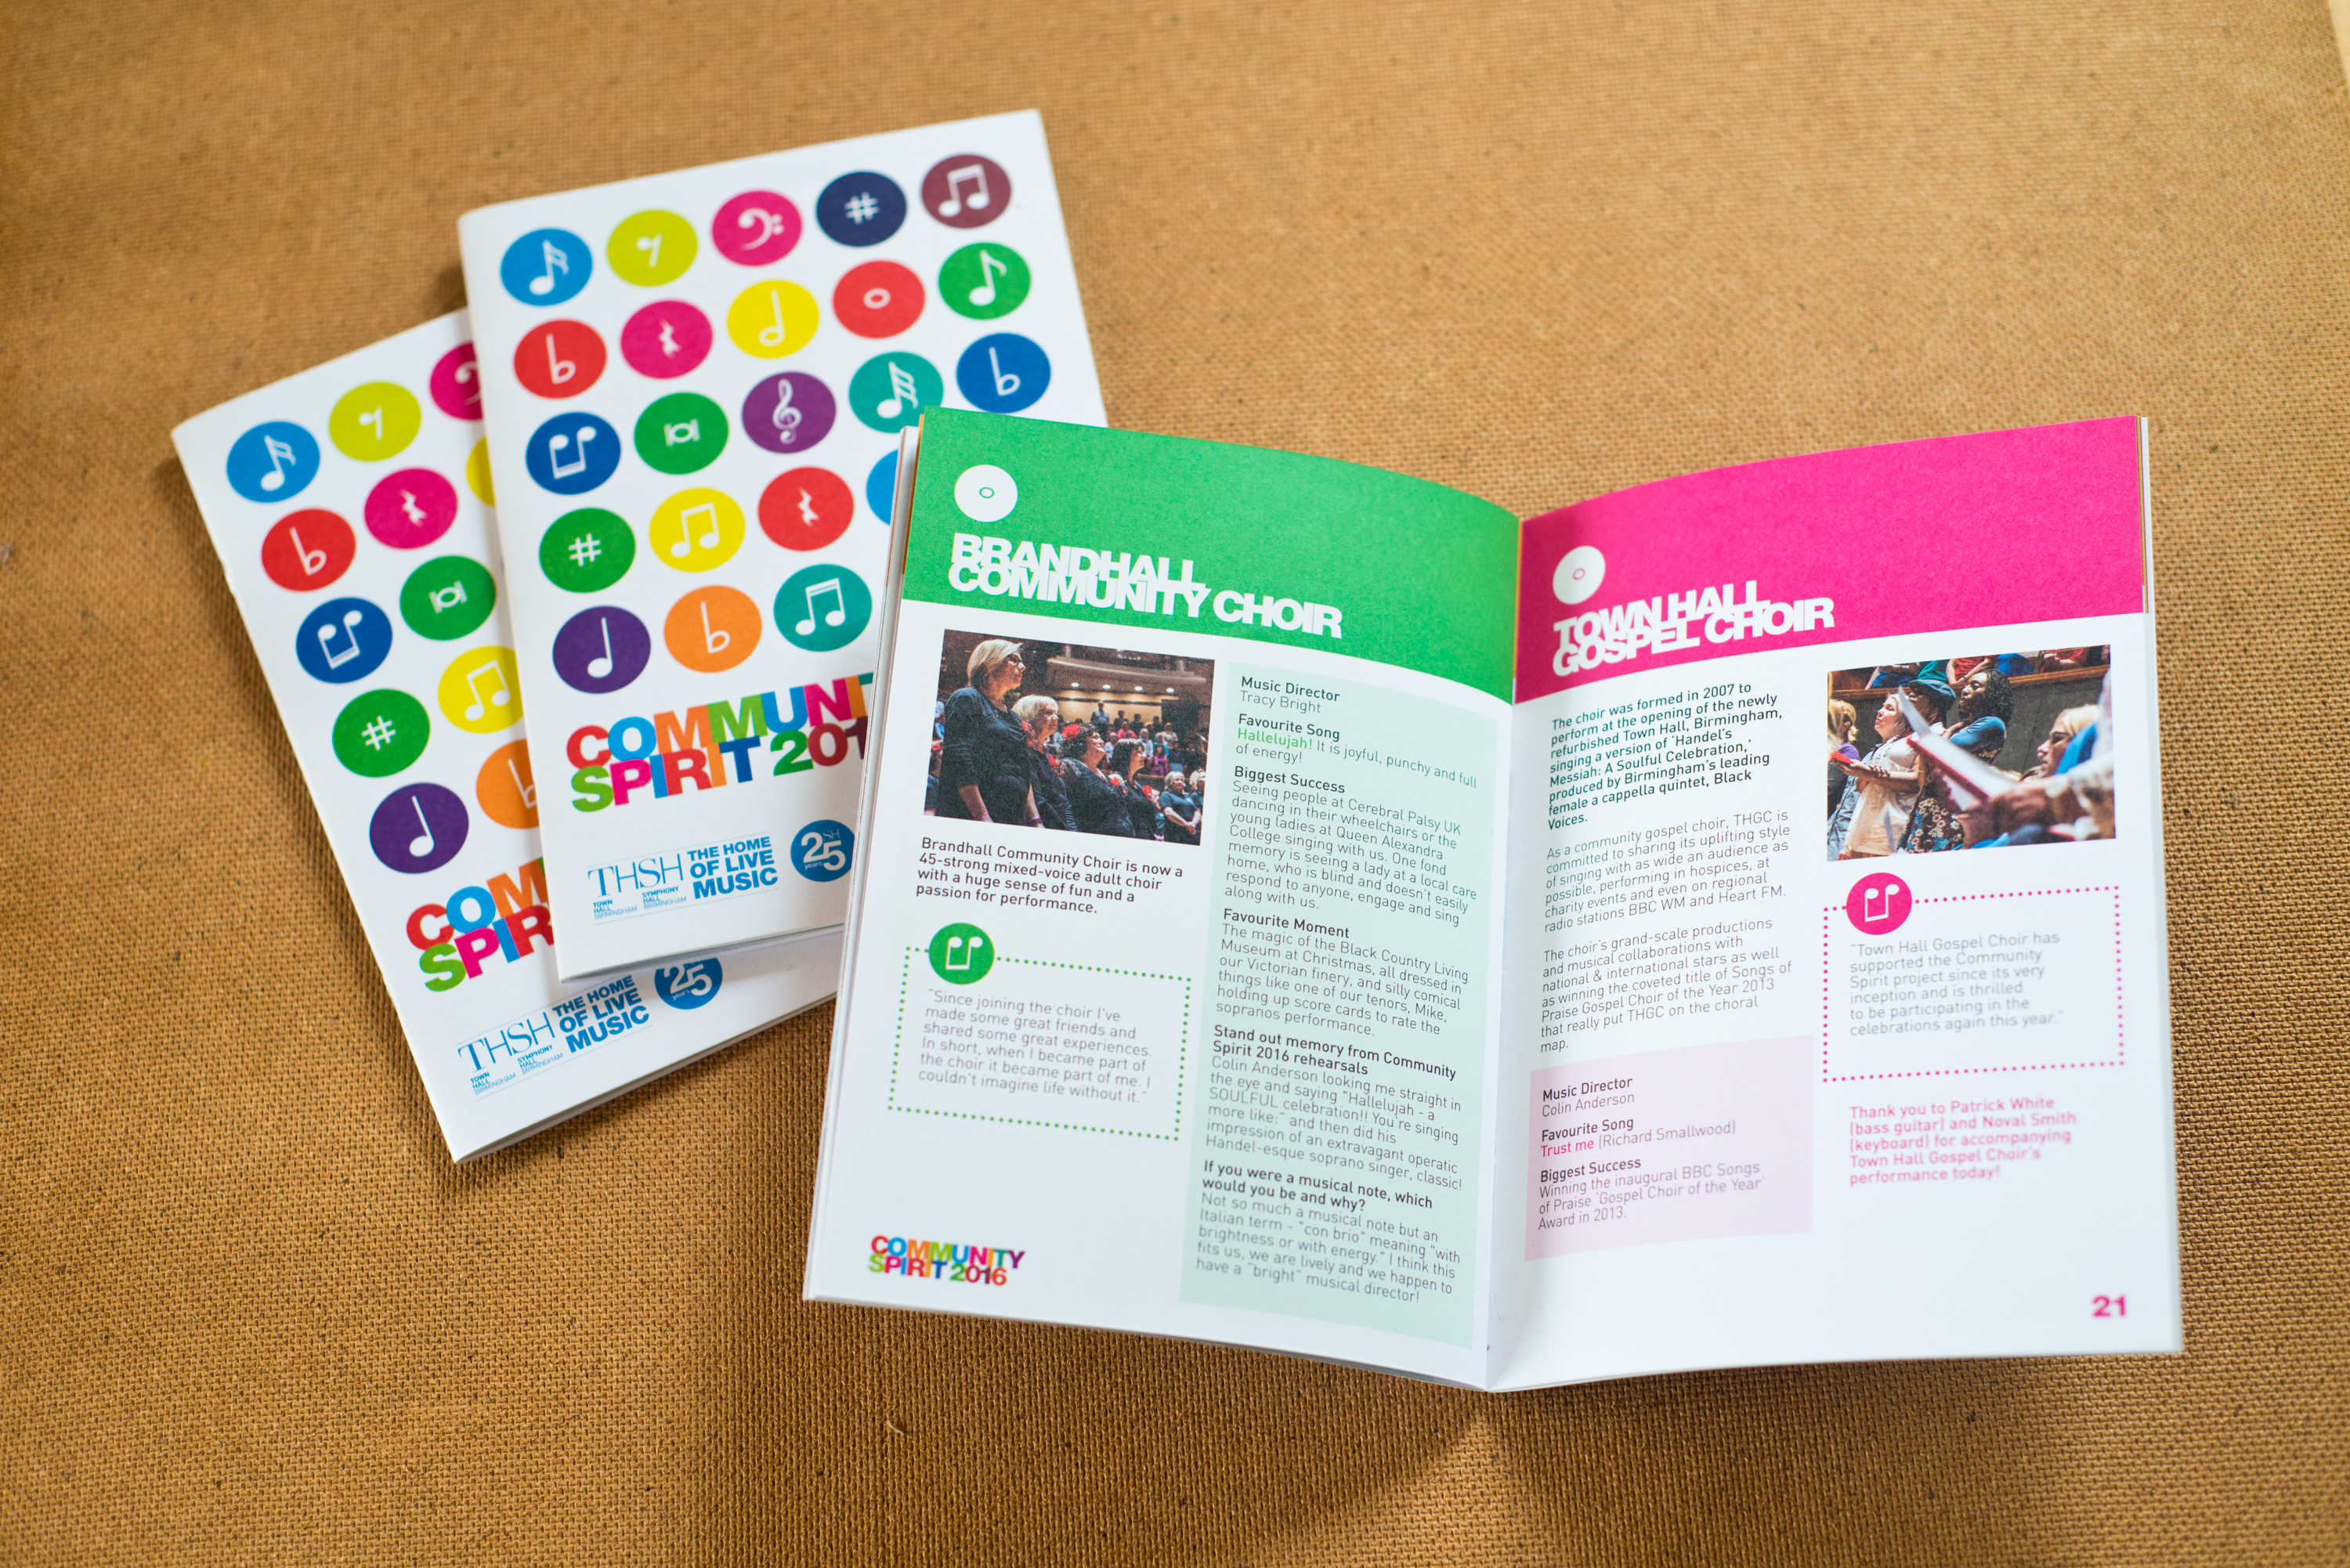 Symphony Hall - Community Spirit Booklet